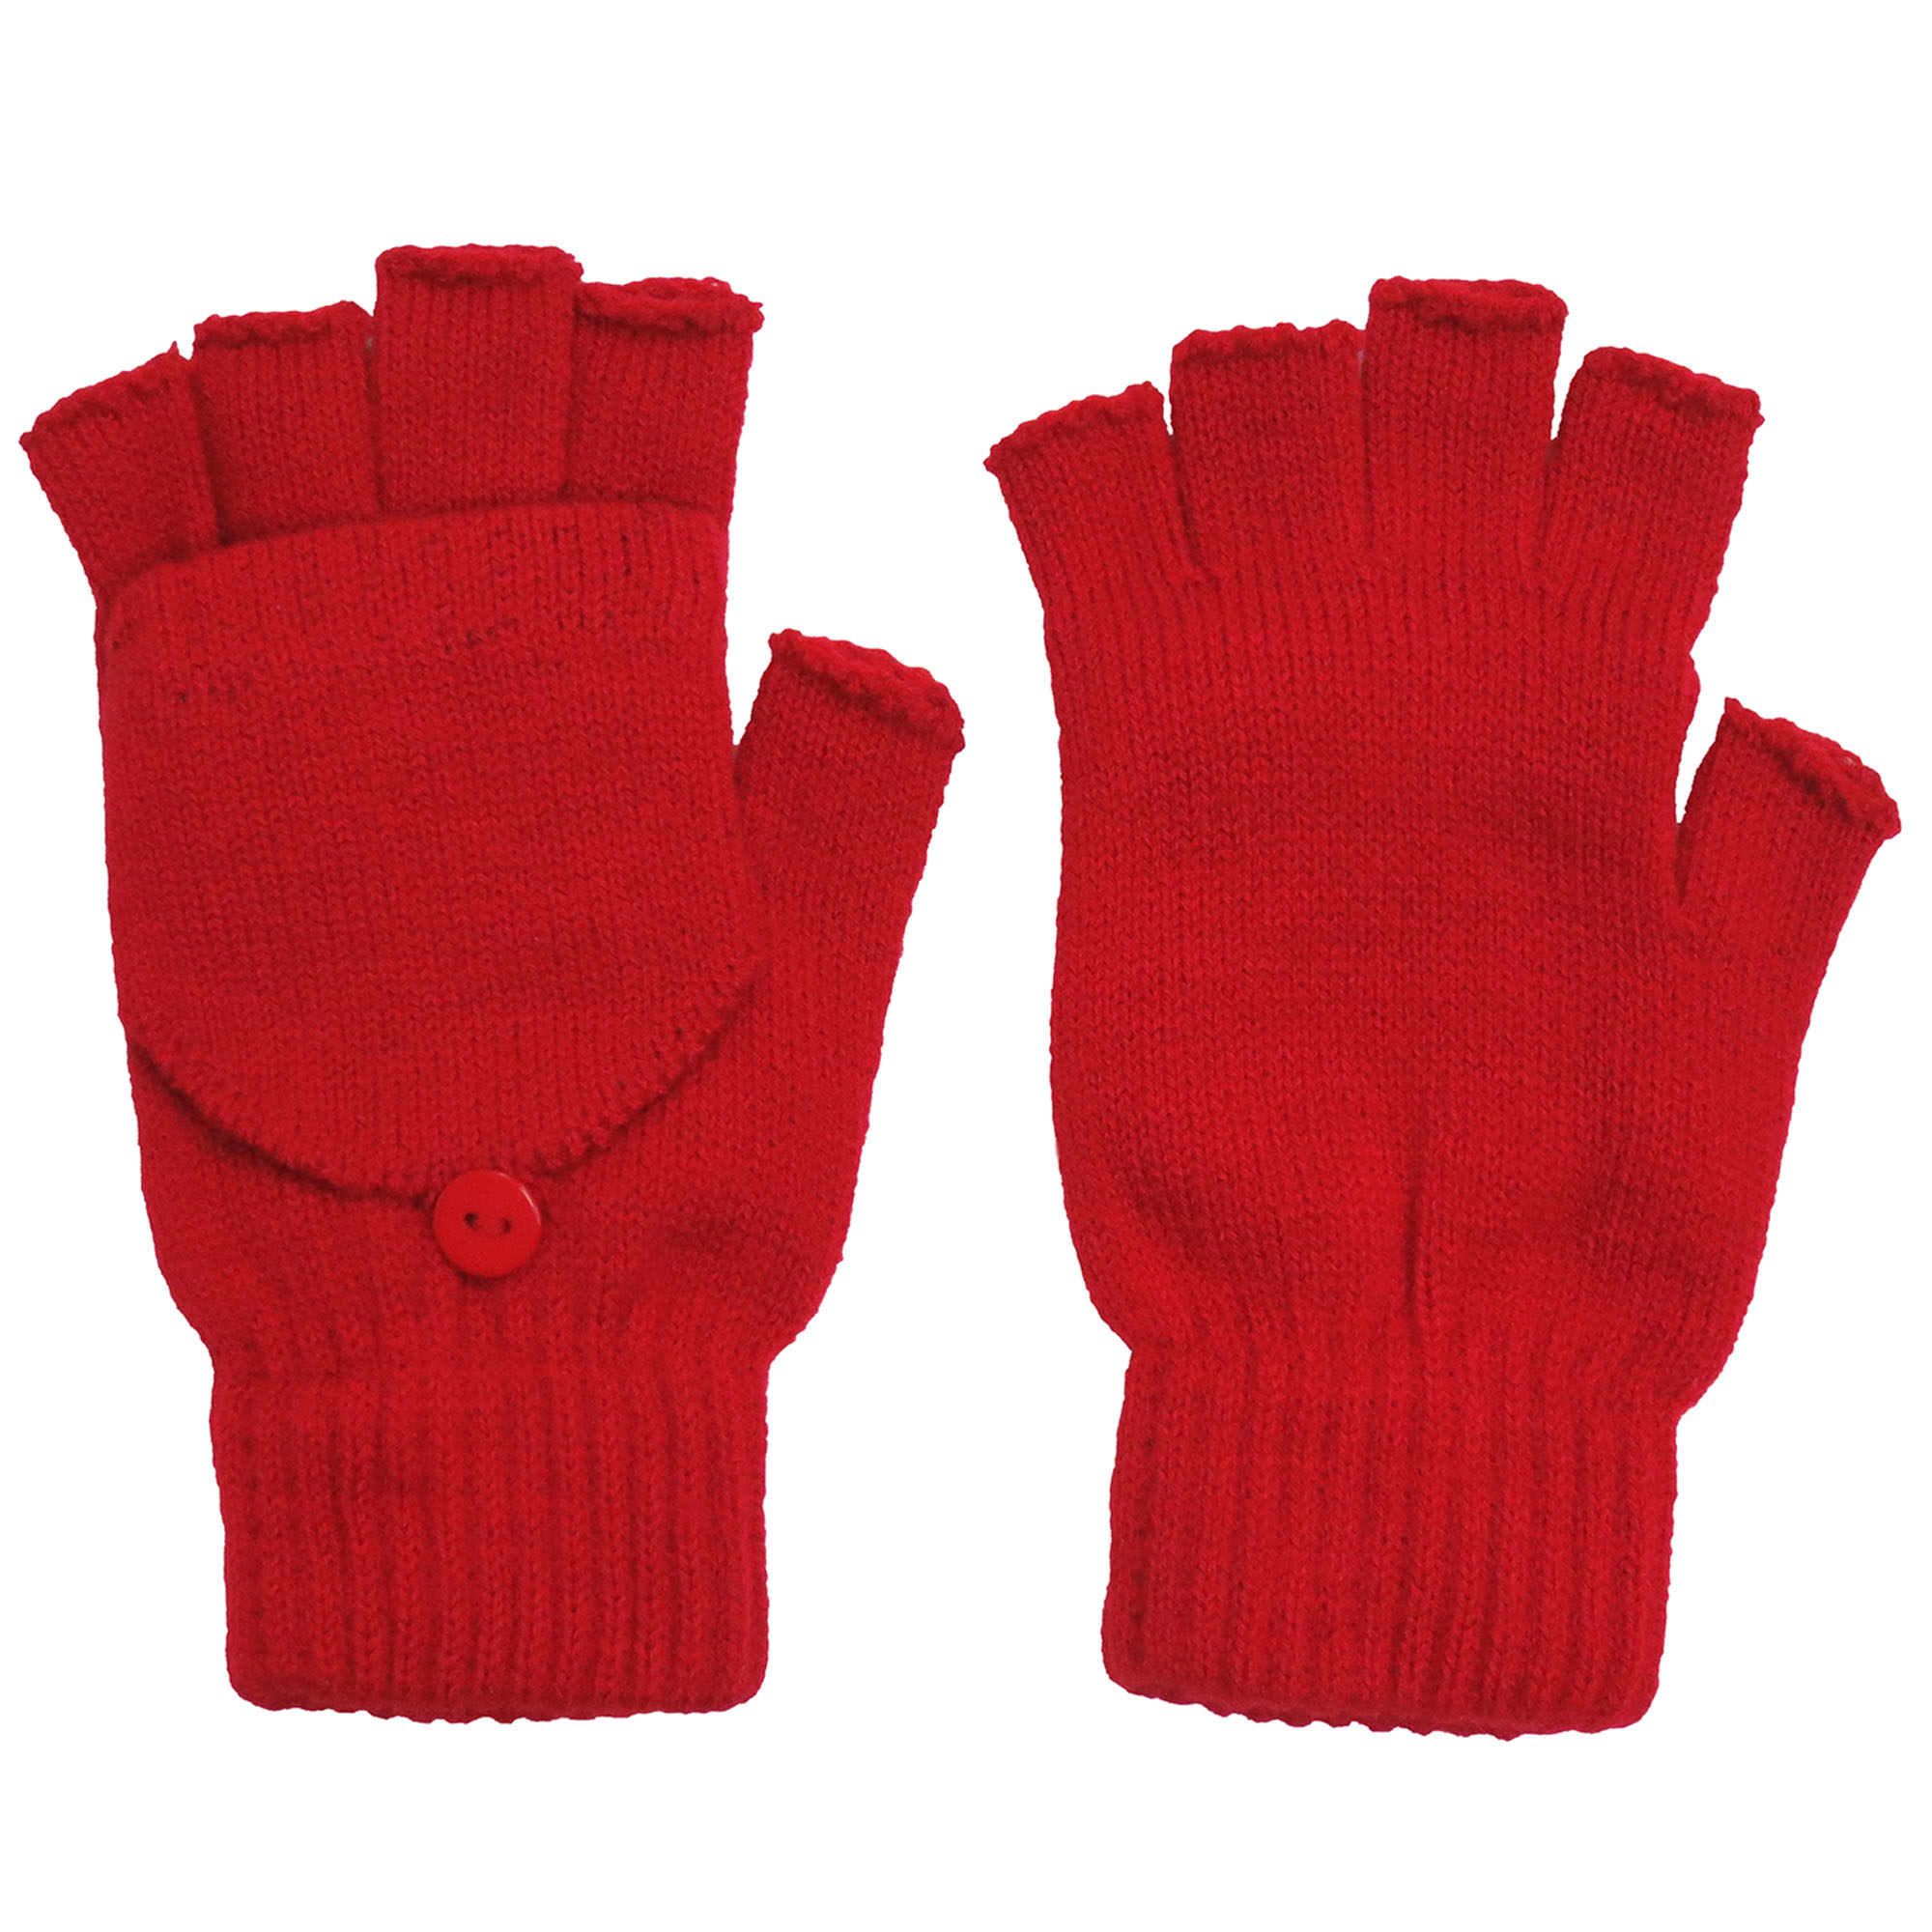 Winter Fingerless Gloves with Flap Cover Mitten Gloves, 56_Red